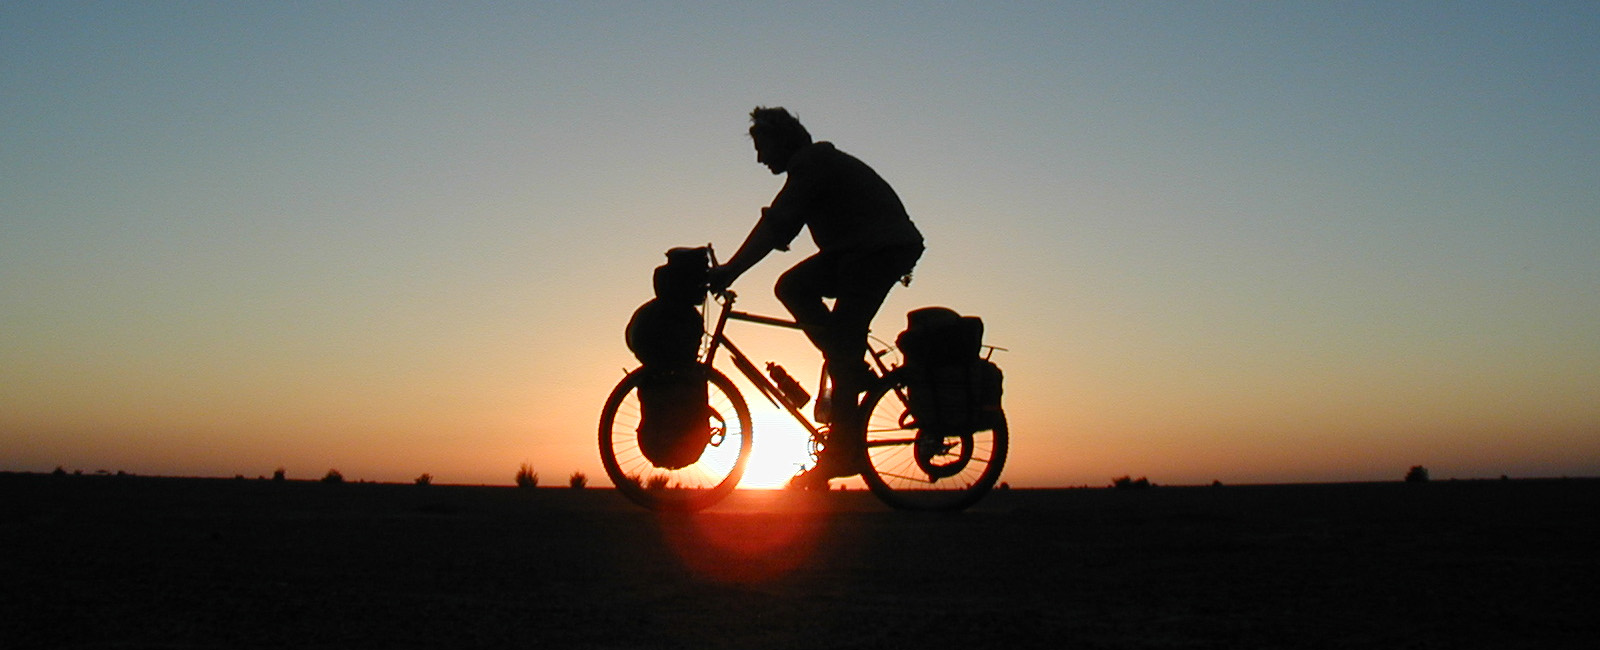 Alastair Humphreys cycling with bags on his bicycle silhouetted against the setting sun in Sudan